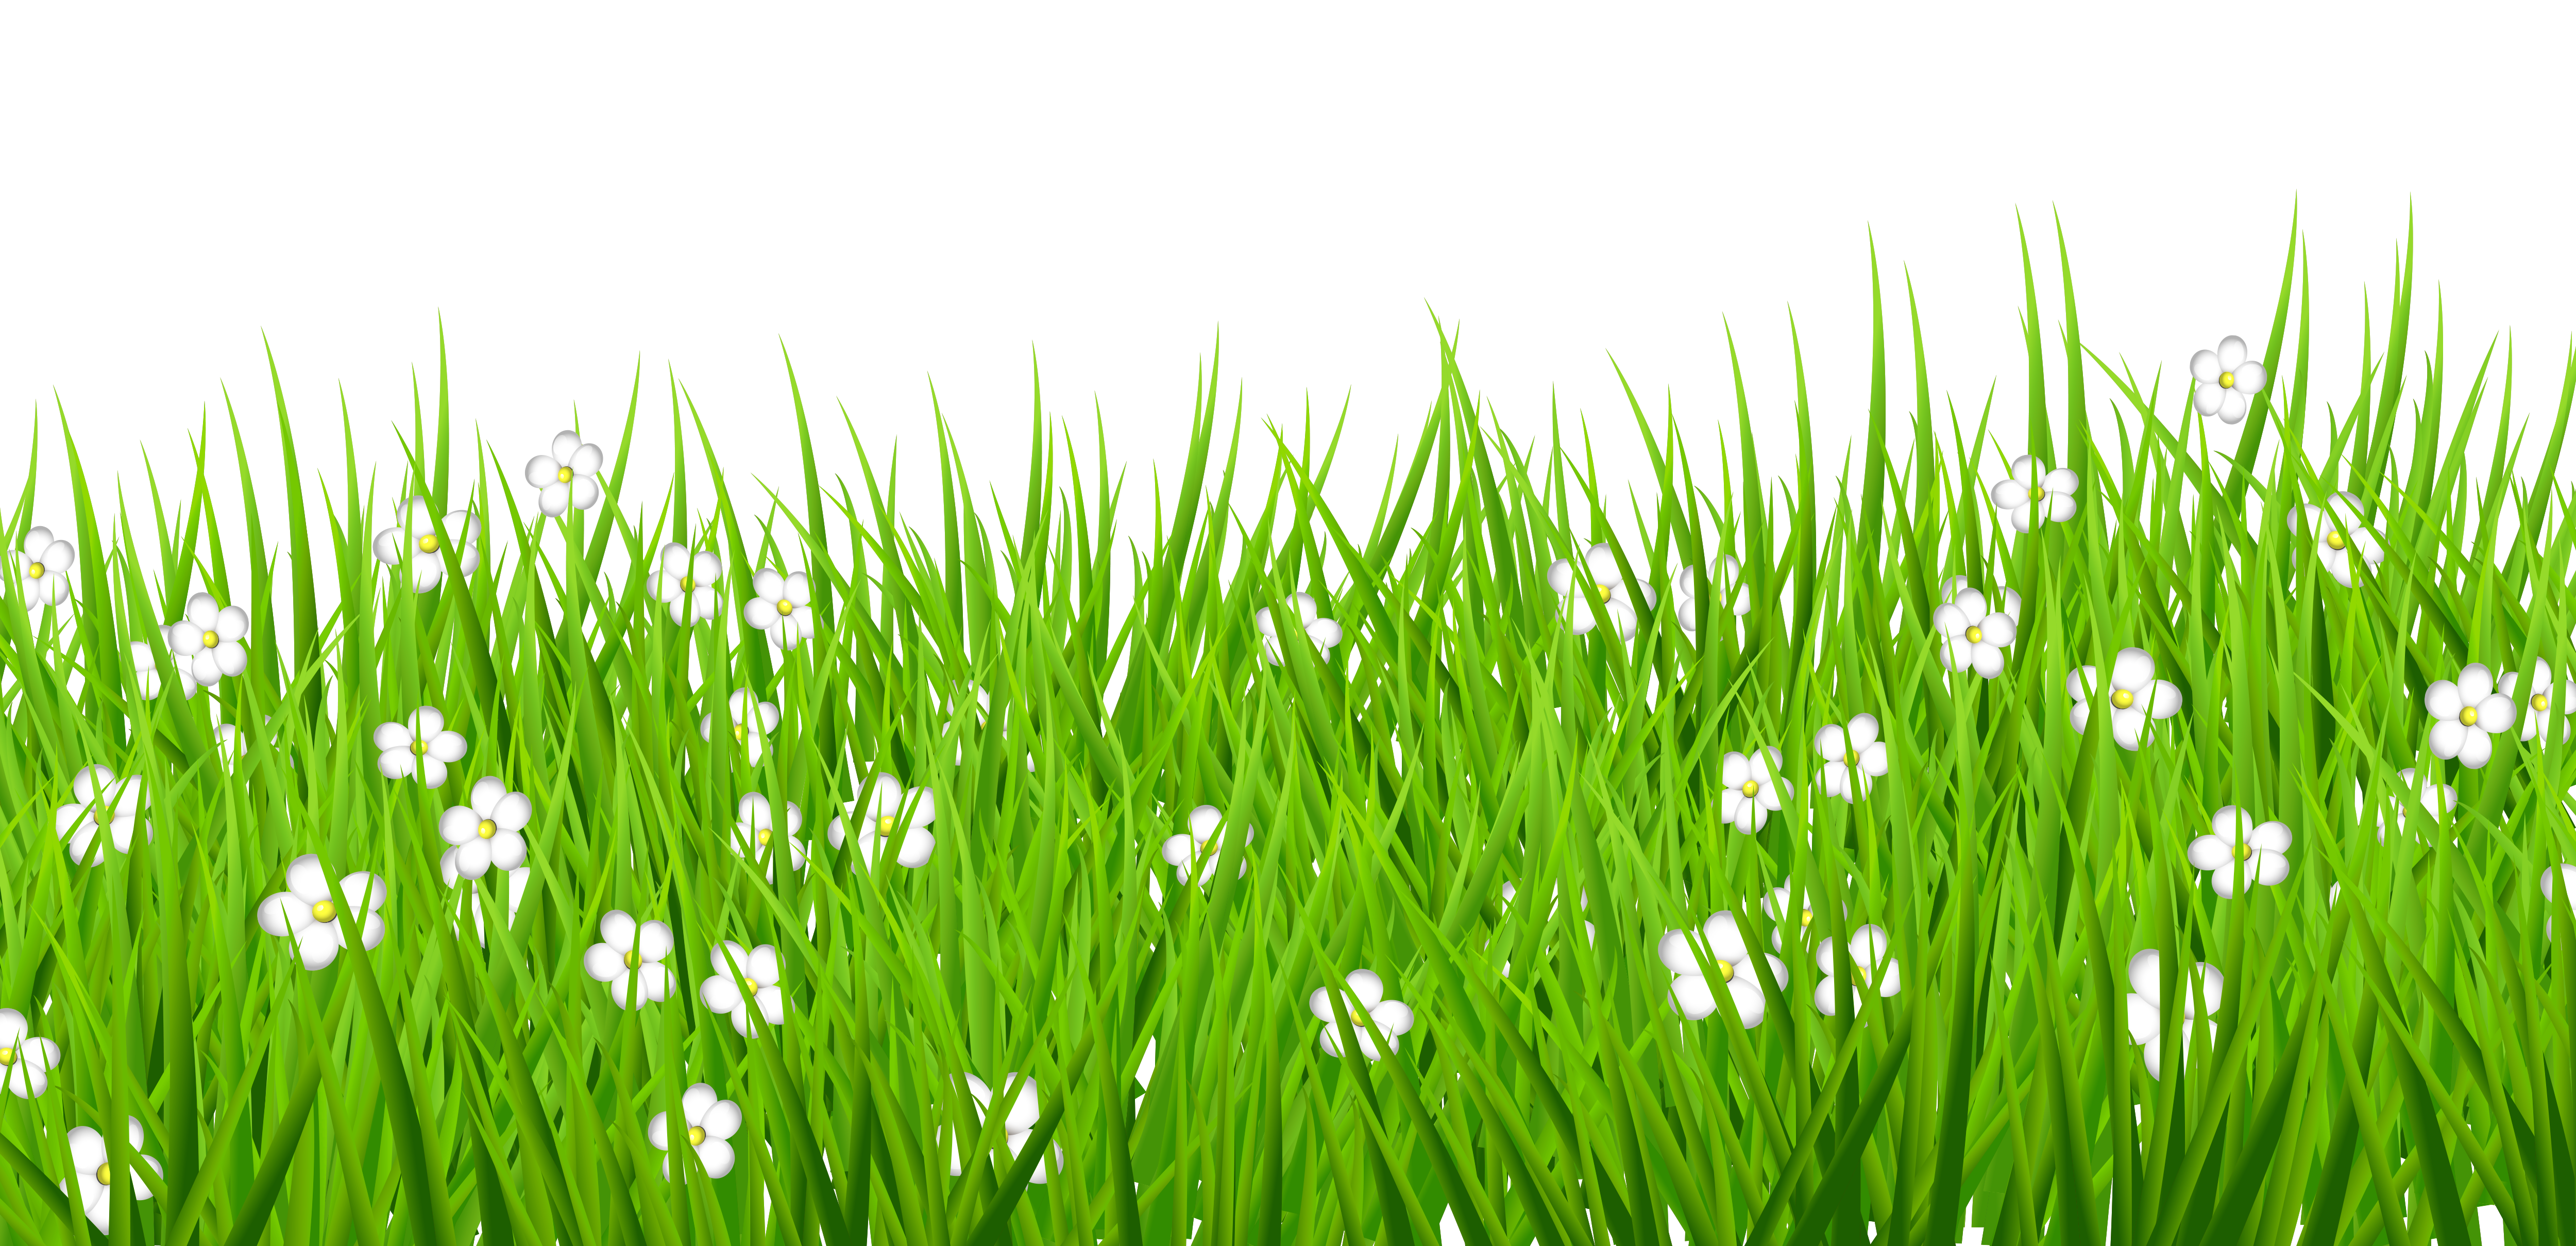 Clear background flower clipart clipart freeuse stock Grass graphic clipart - ClipartFest clipart freeuse stock